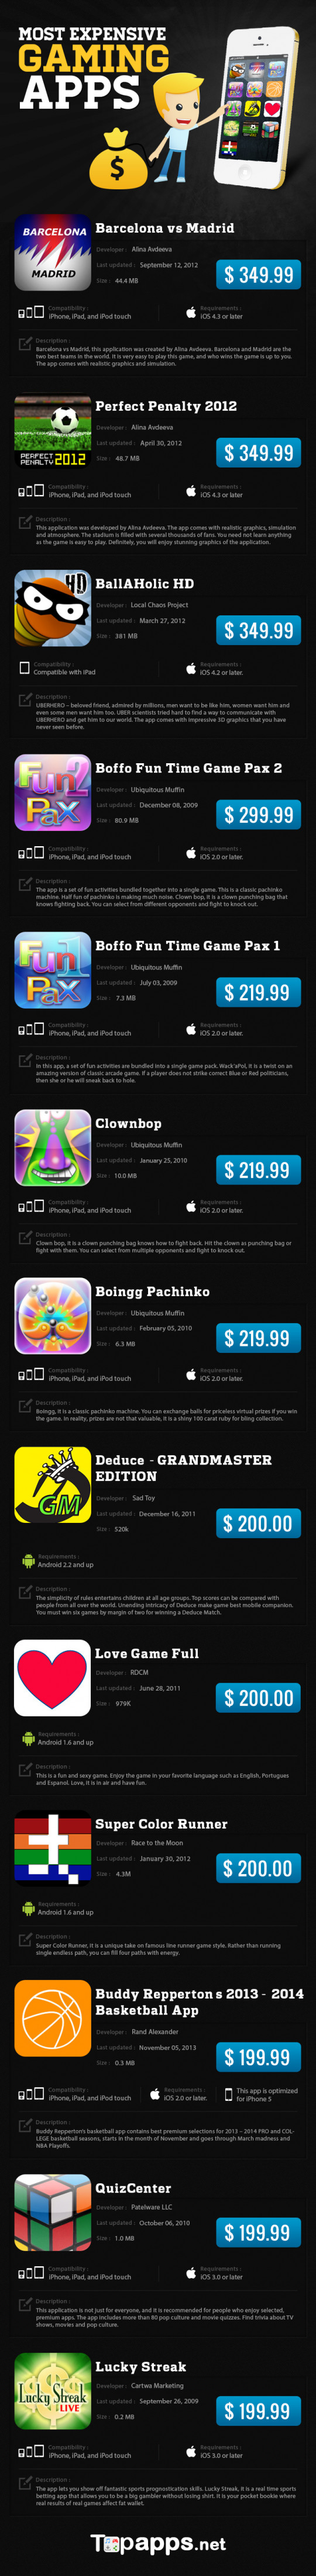 Most Expensive Gaming Apps